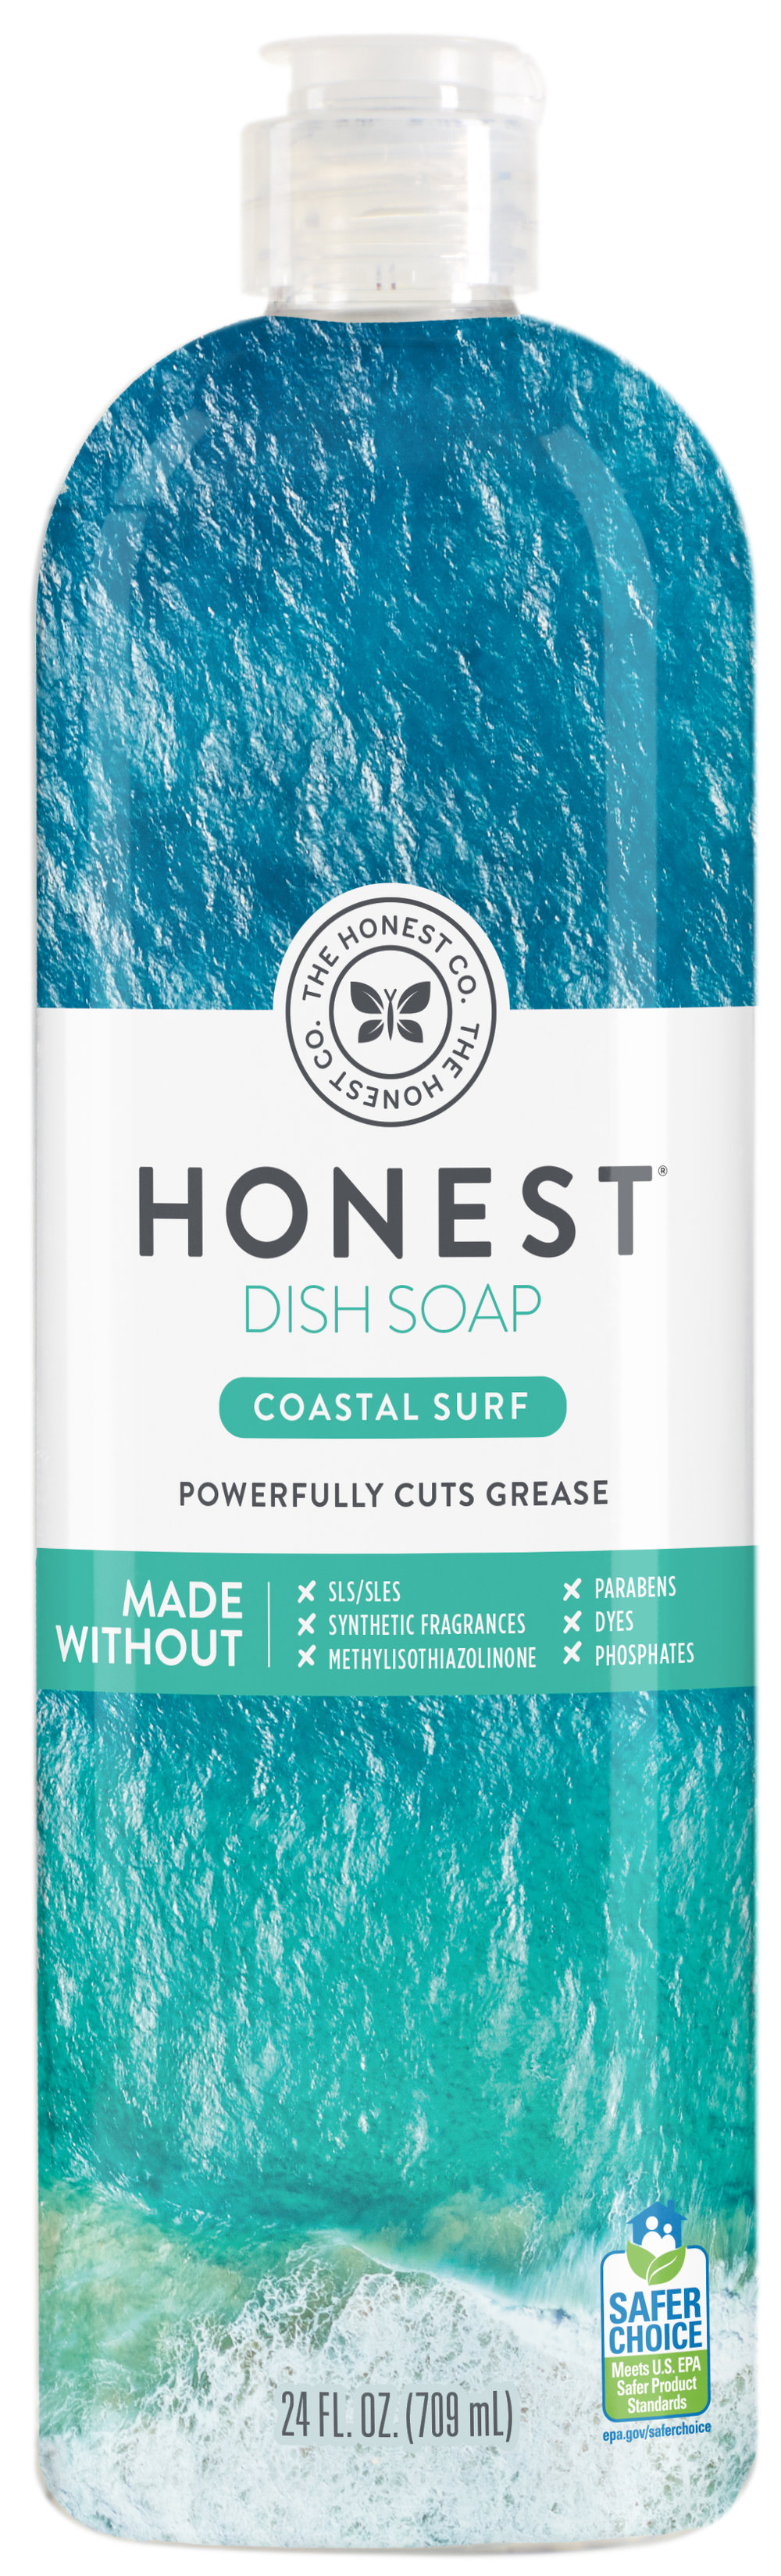 DishSoap_24floz_Coastal.jpg